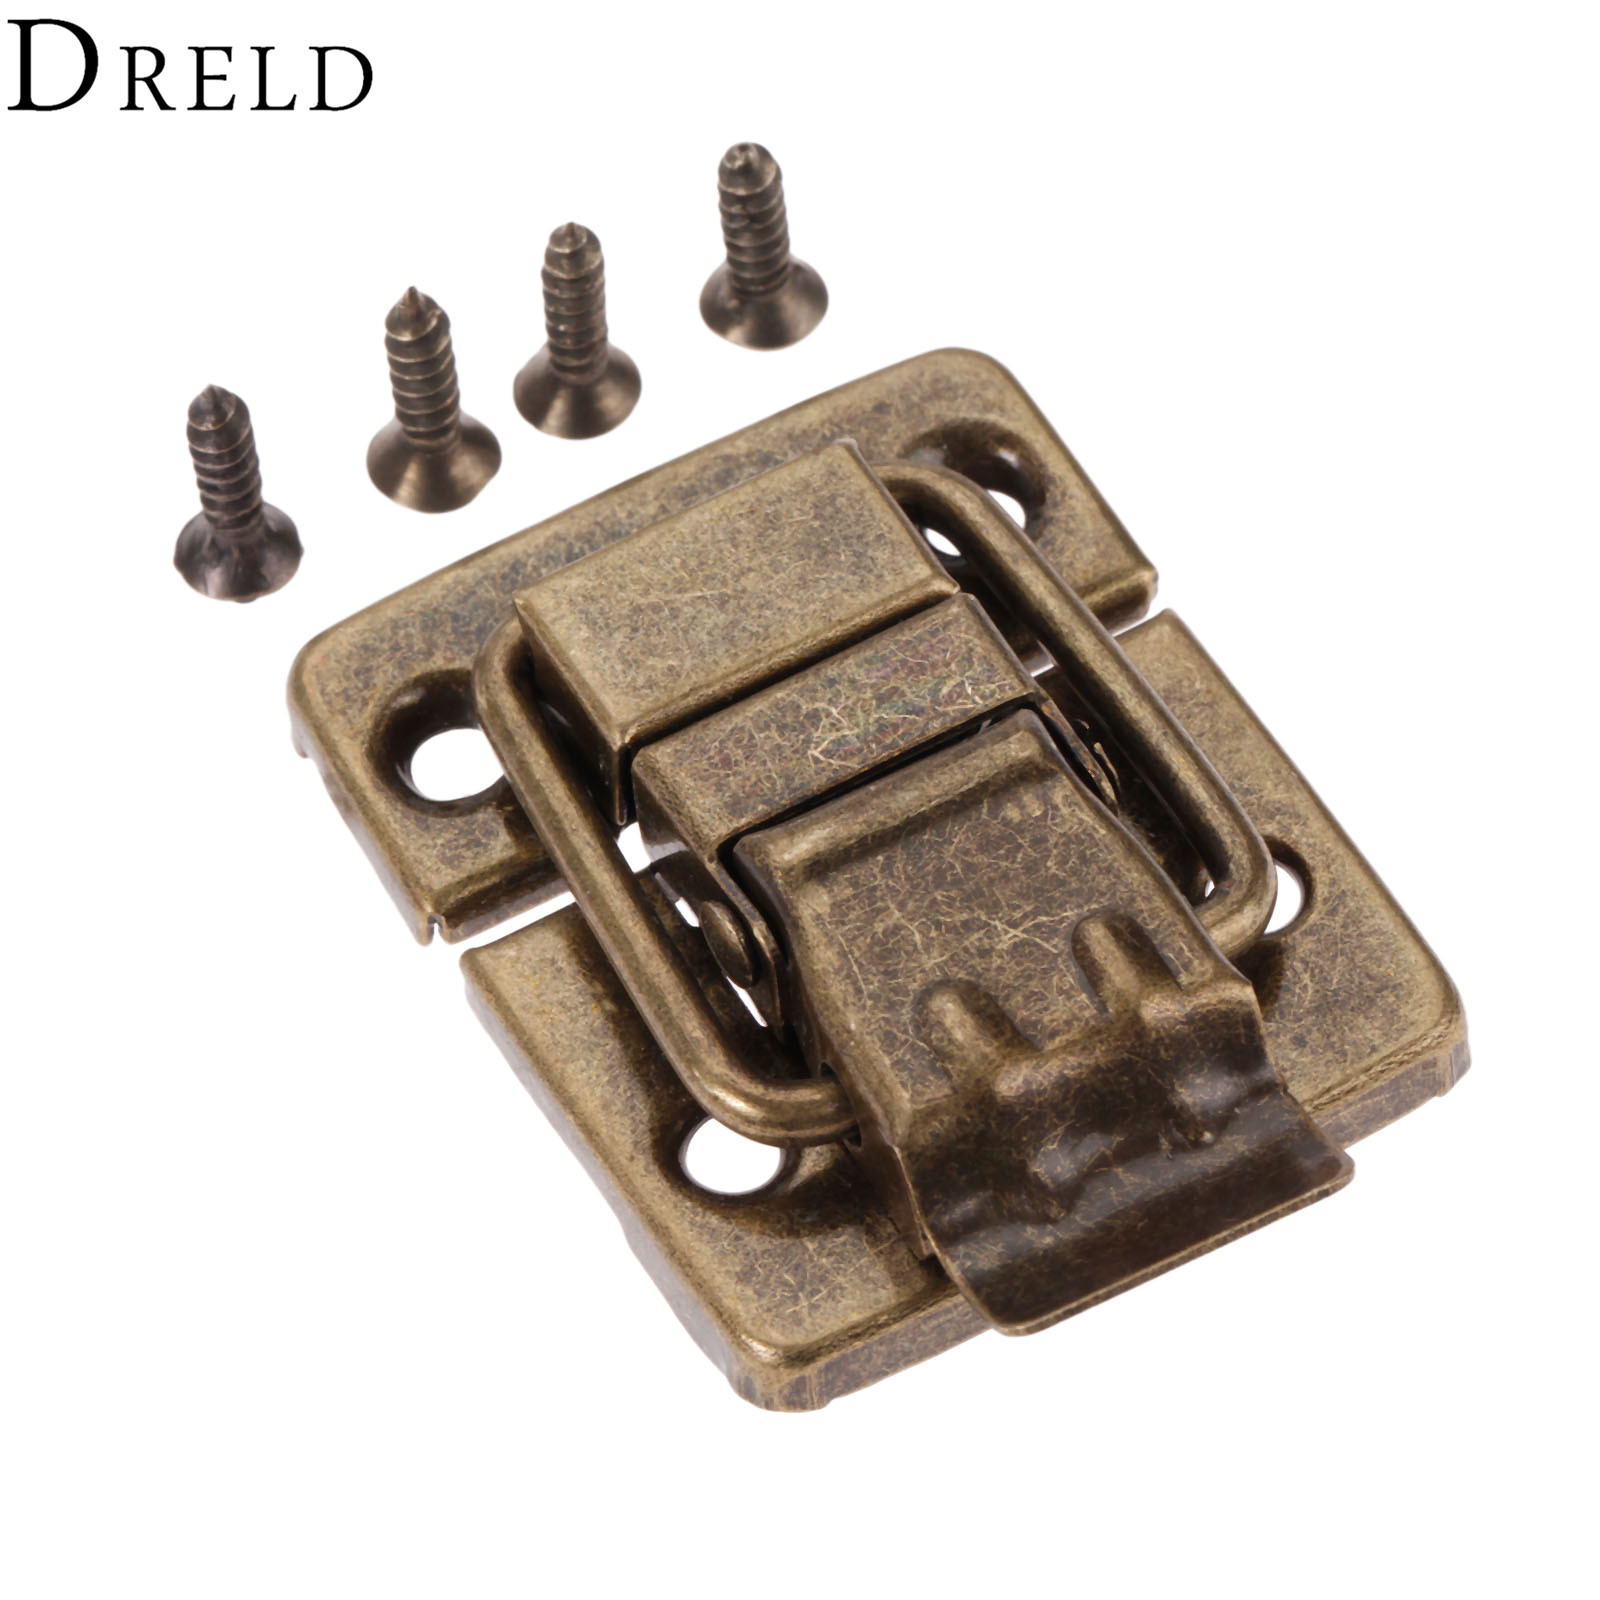 DRELD Antique Bronze Jewelry Wood Box Toggle Latch Hasp Drawer Latches Decorative Case Buckle Clasp Furniture Hardware 30*36mm wood